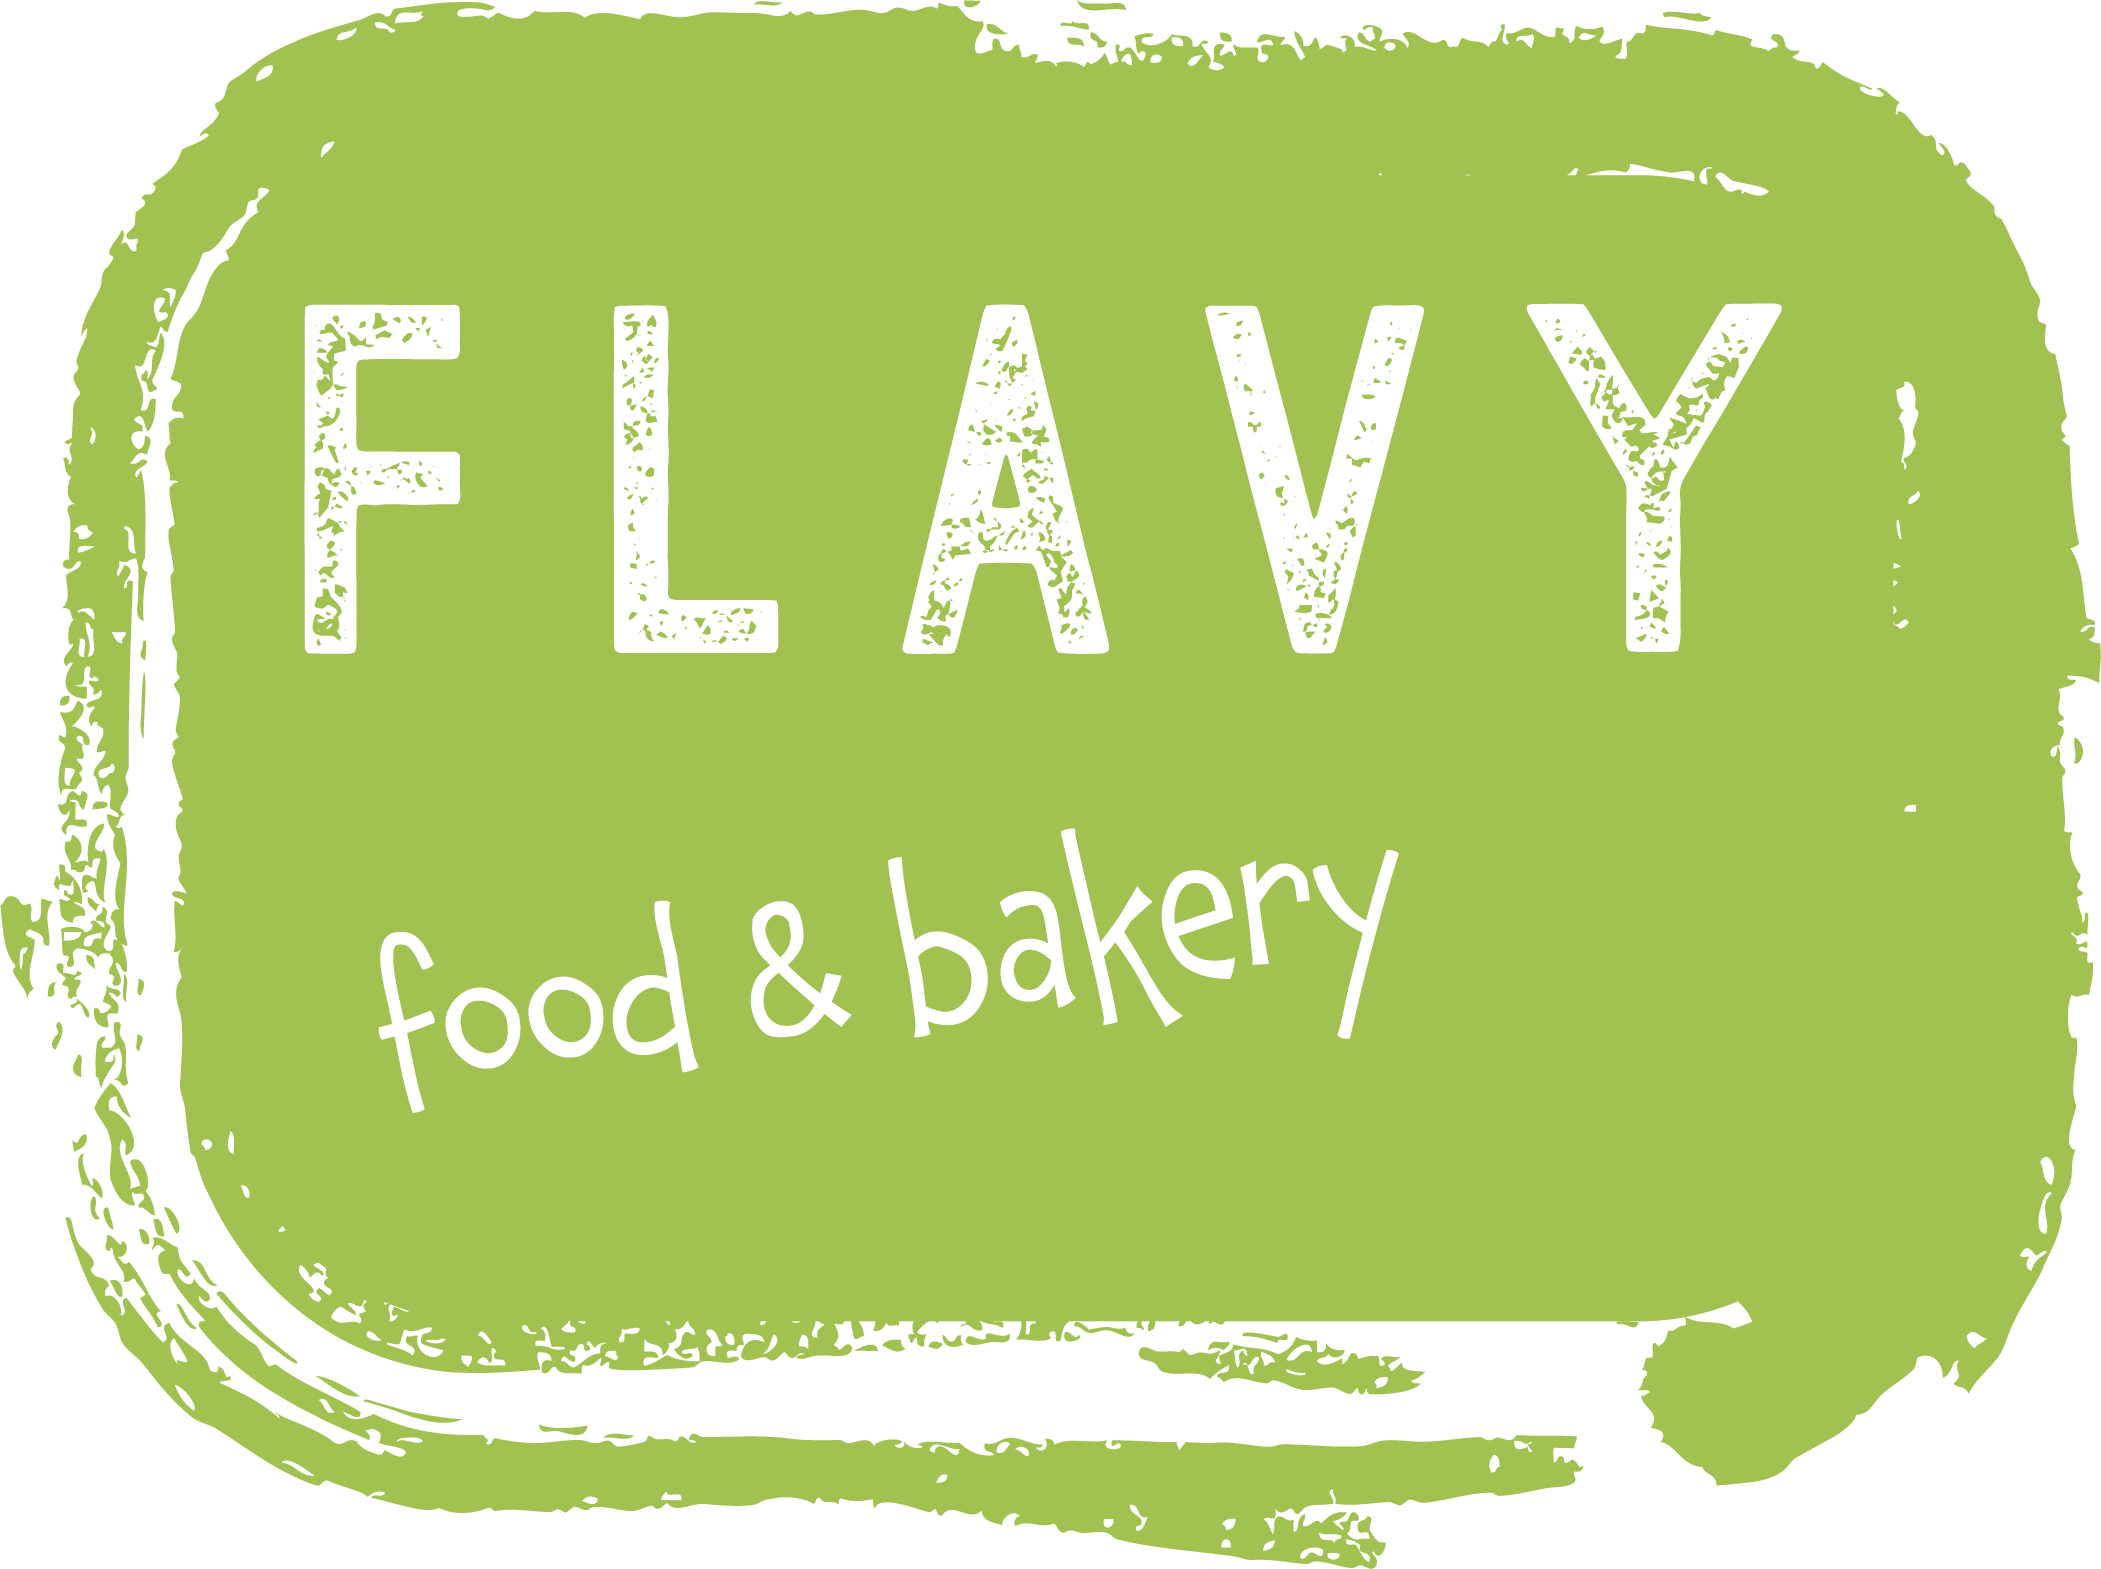 flavy.newlogo.png